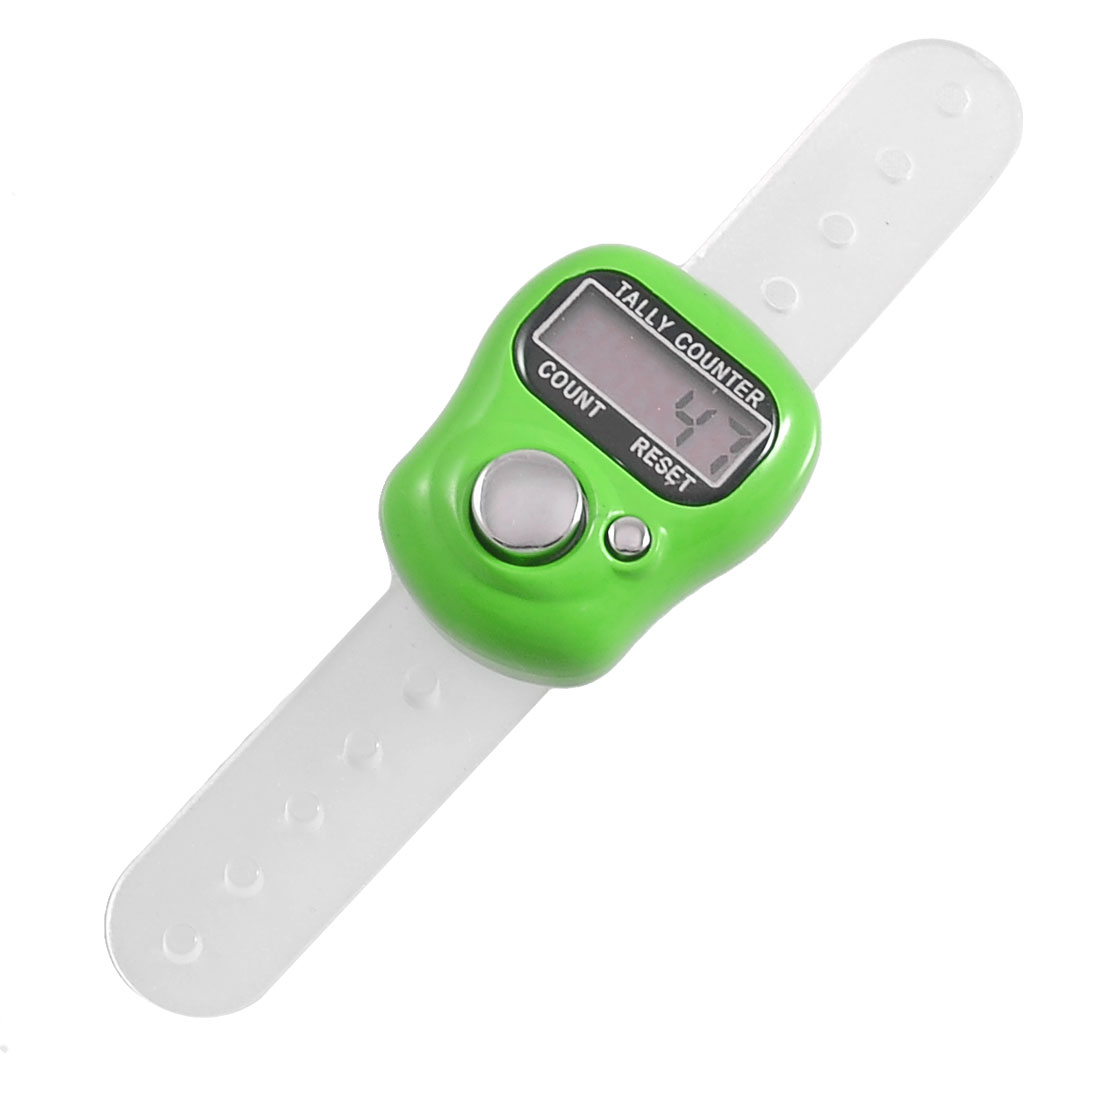 Green Plastic Case 5 Digit LCD Electronic Finger Counter Hand Tally